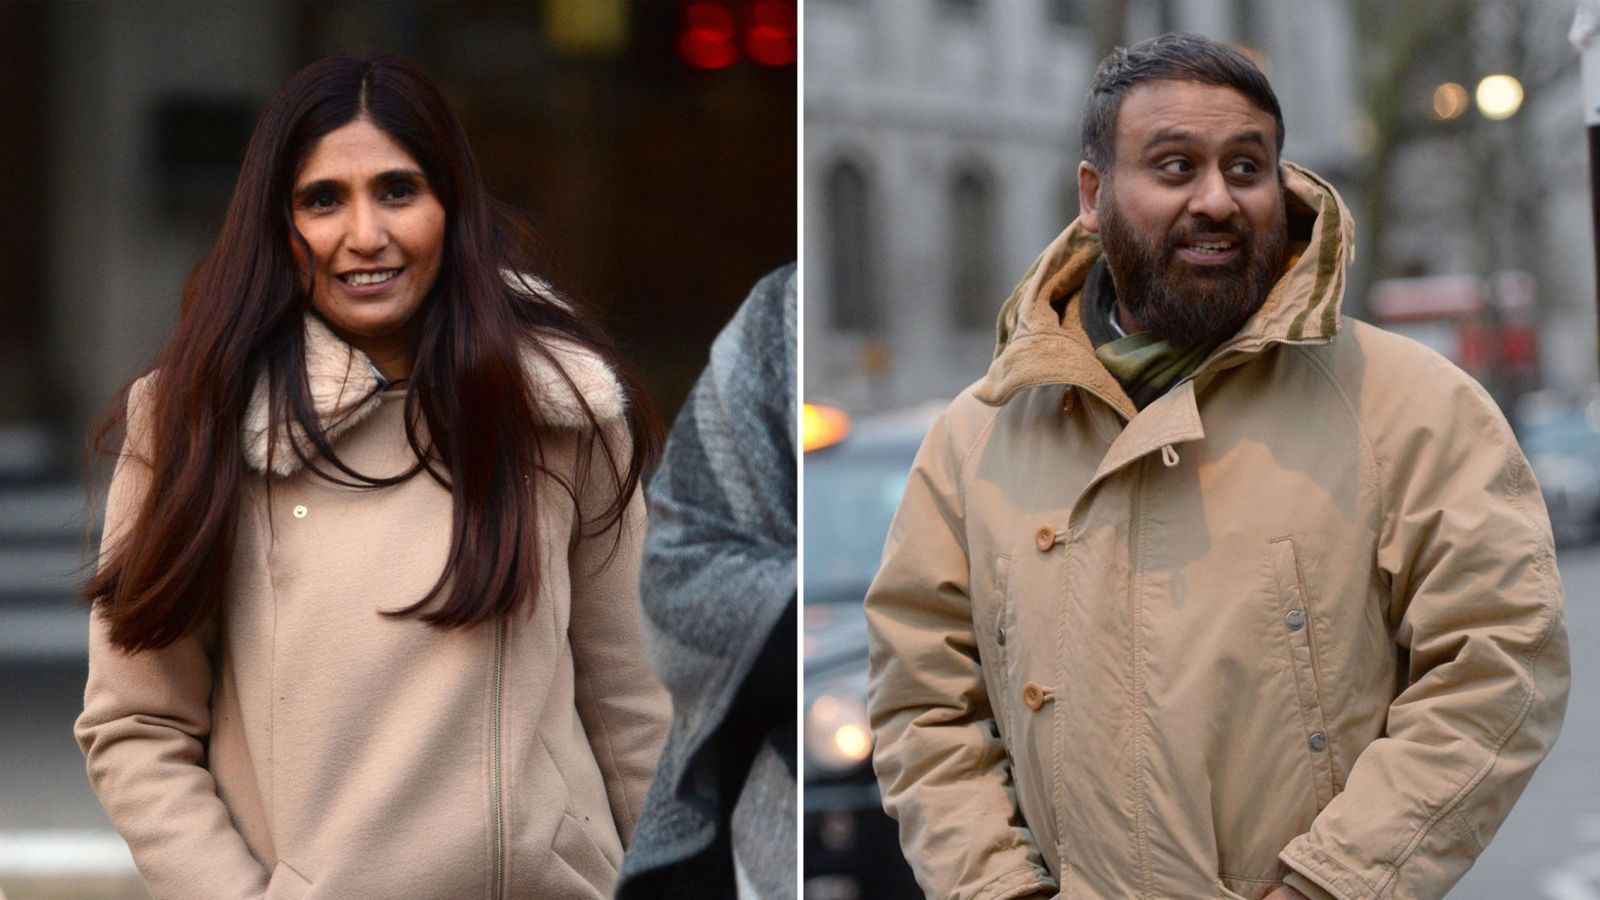 Landmark Court Ruling Finds Muslim Couple's Sharia Marriage Not Valid